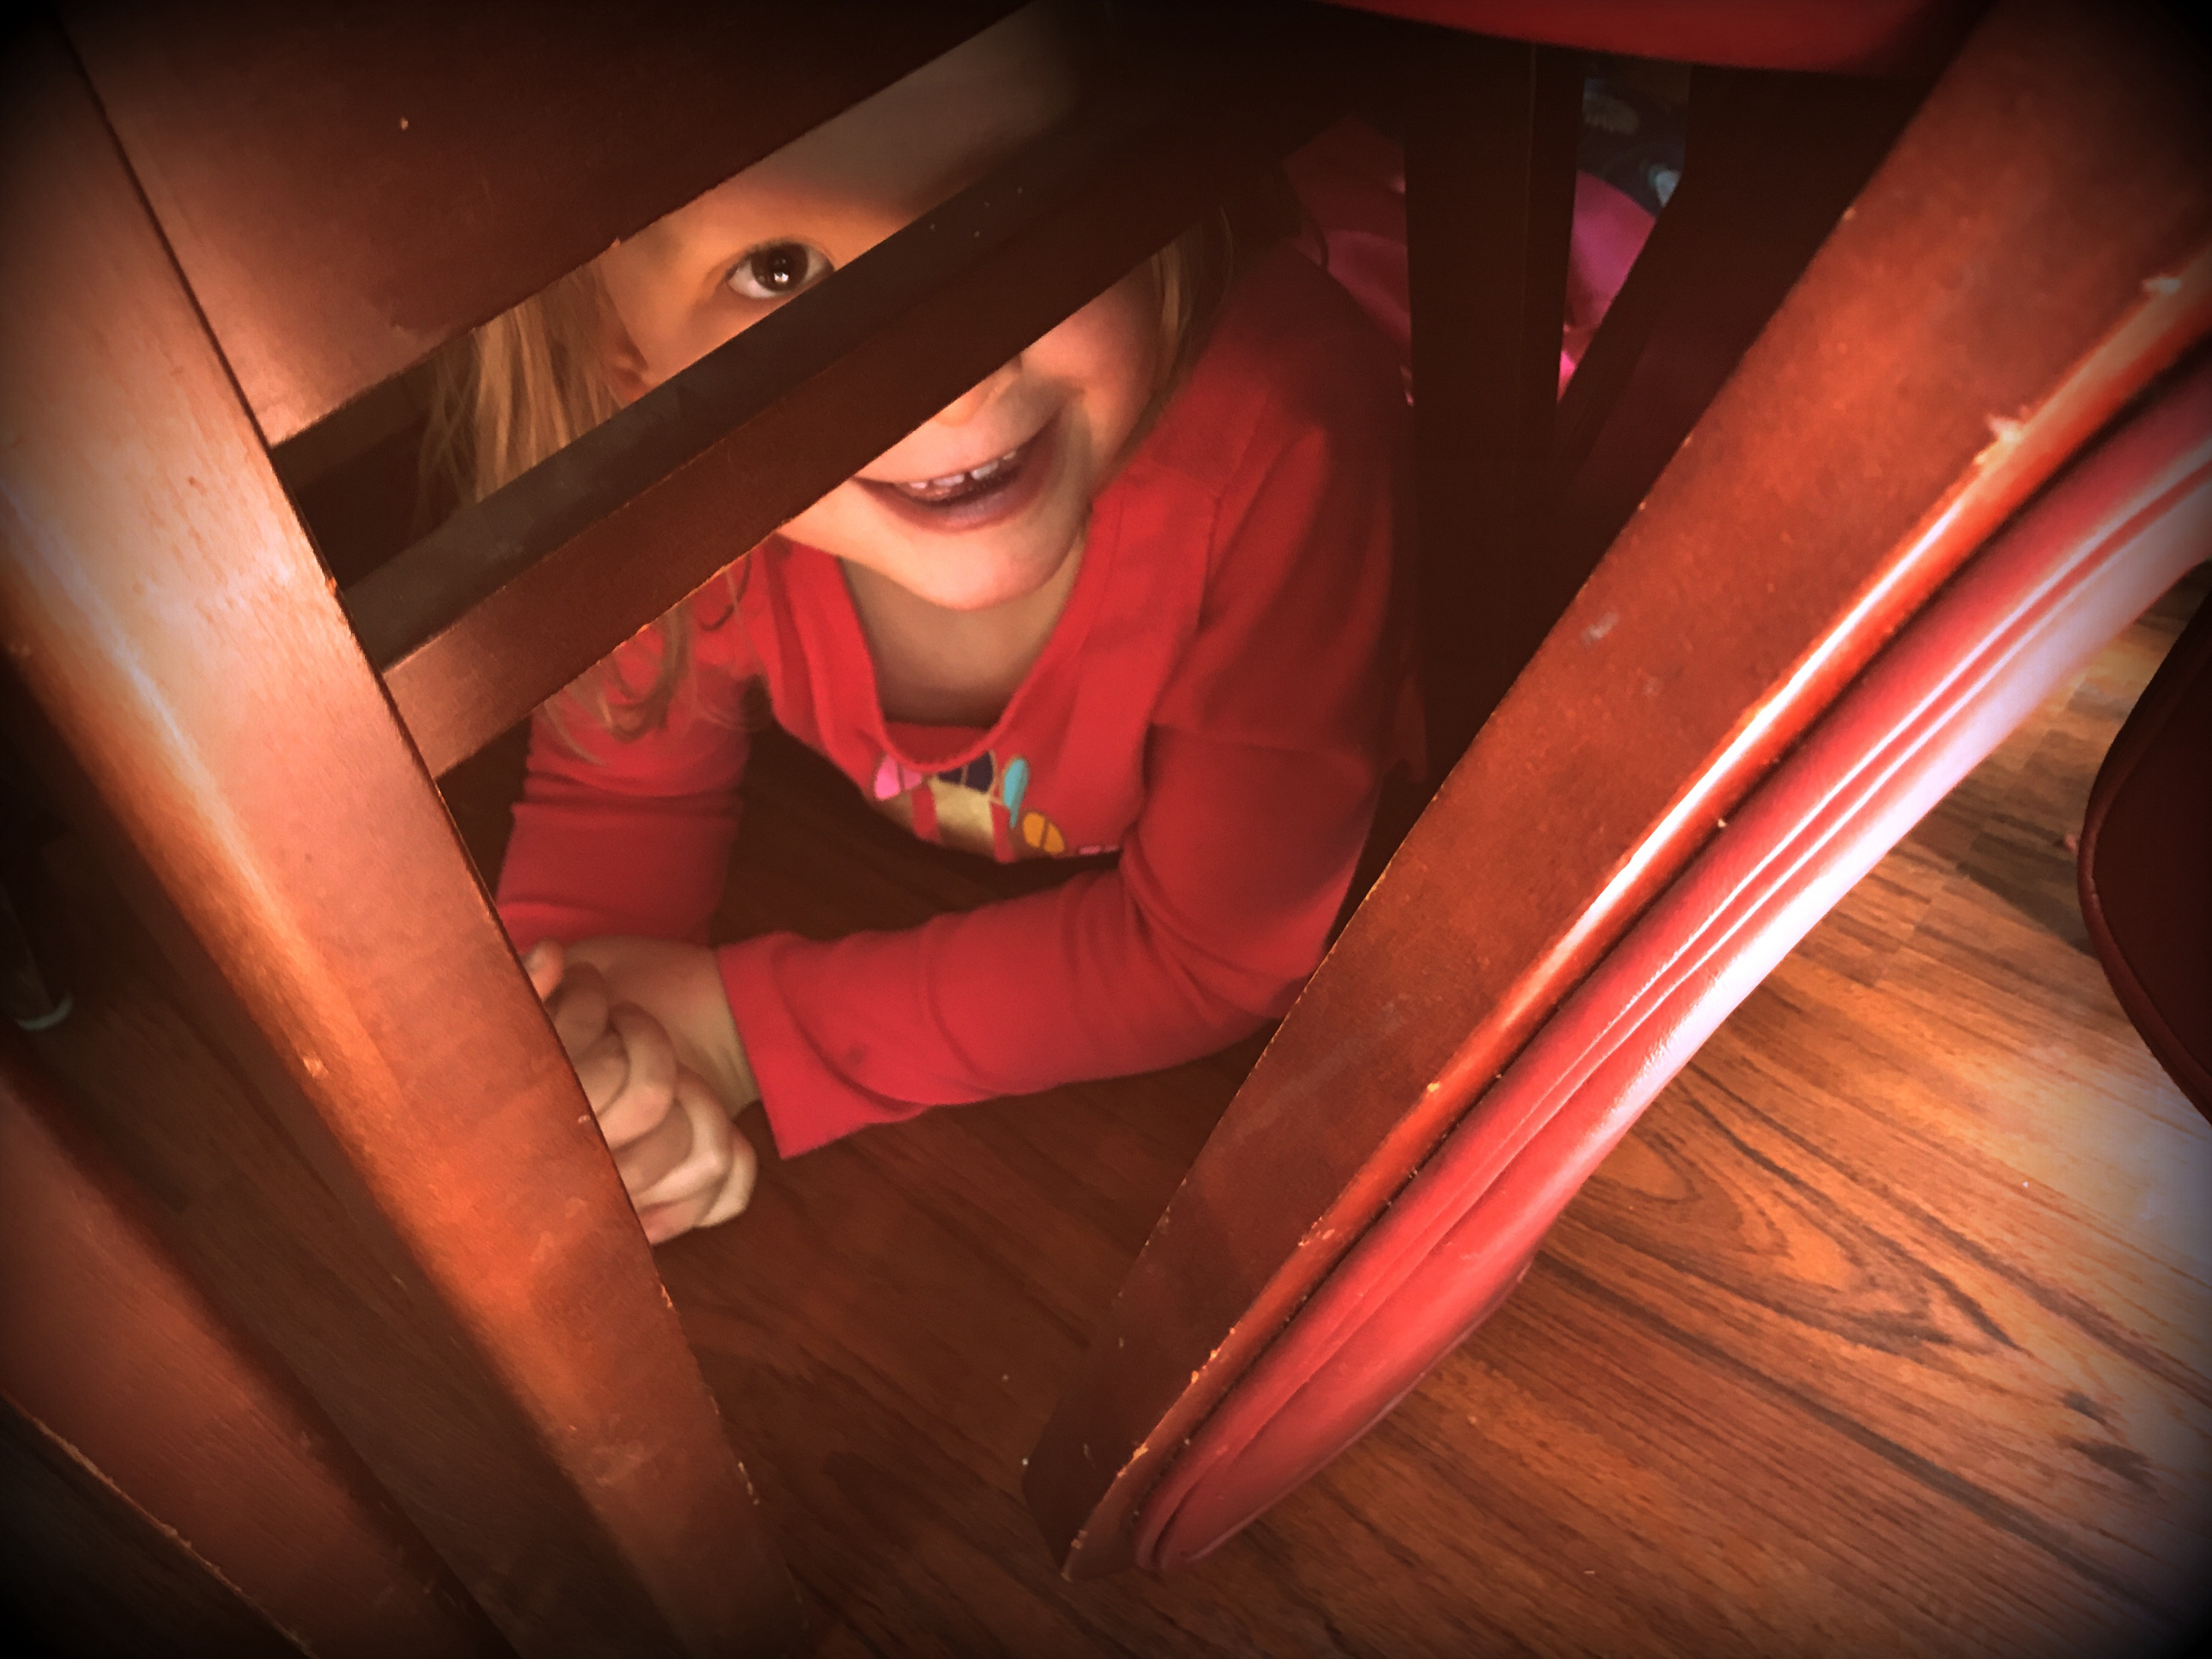 Photograph of a little girl hiding under some dining room chairs looking up with a smile on her face after being discovered